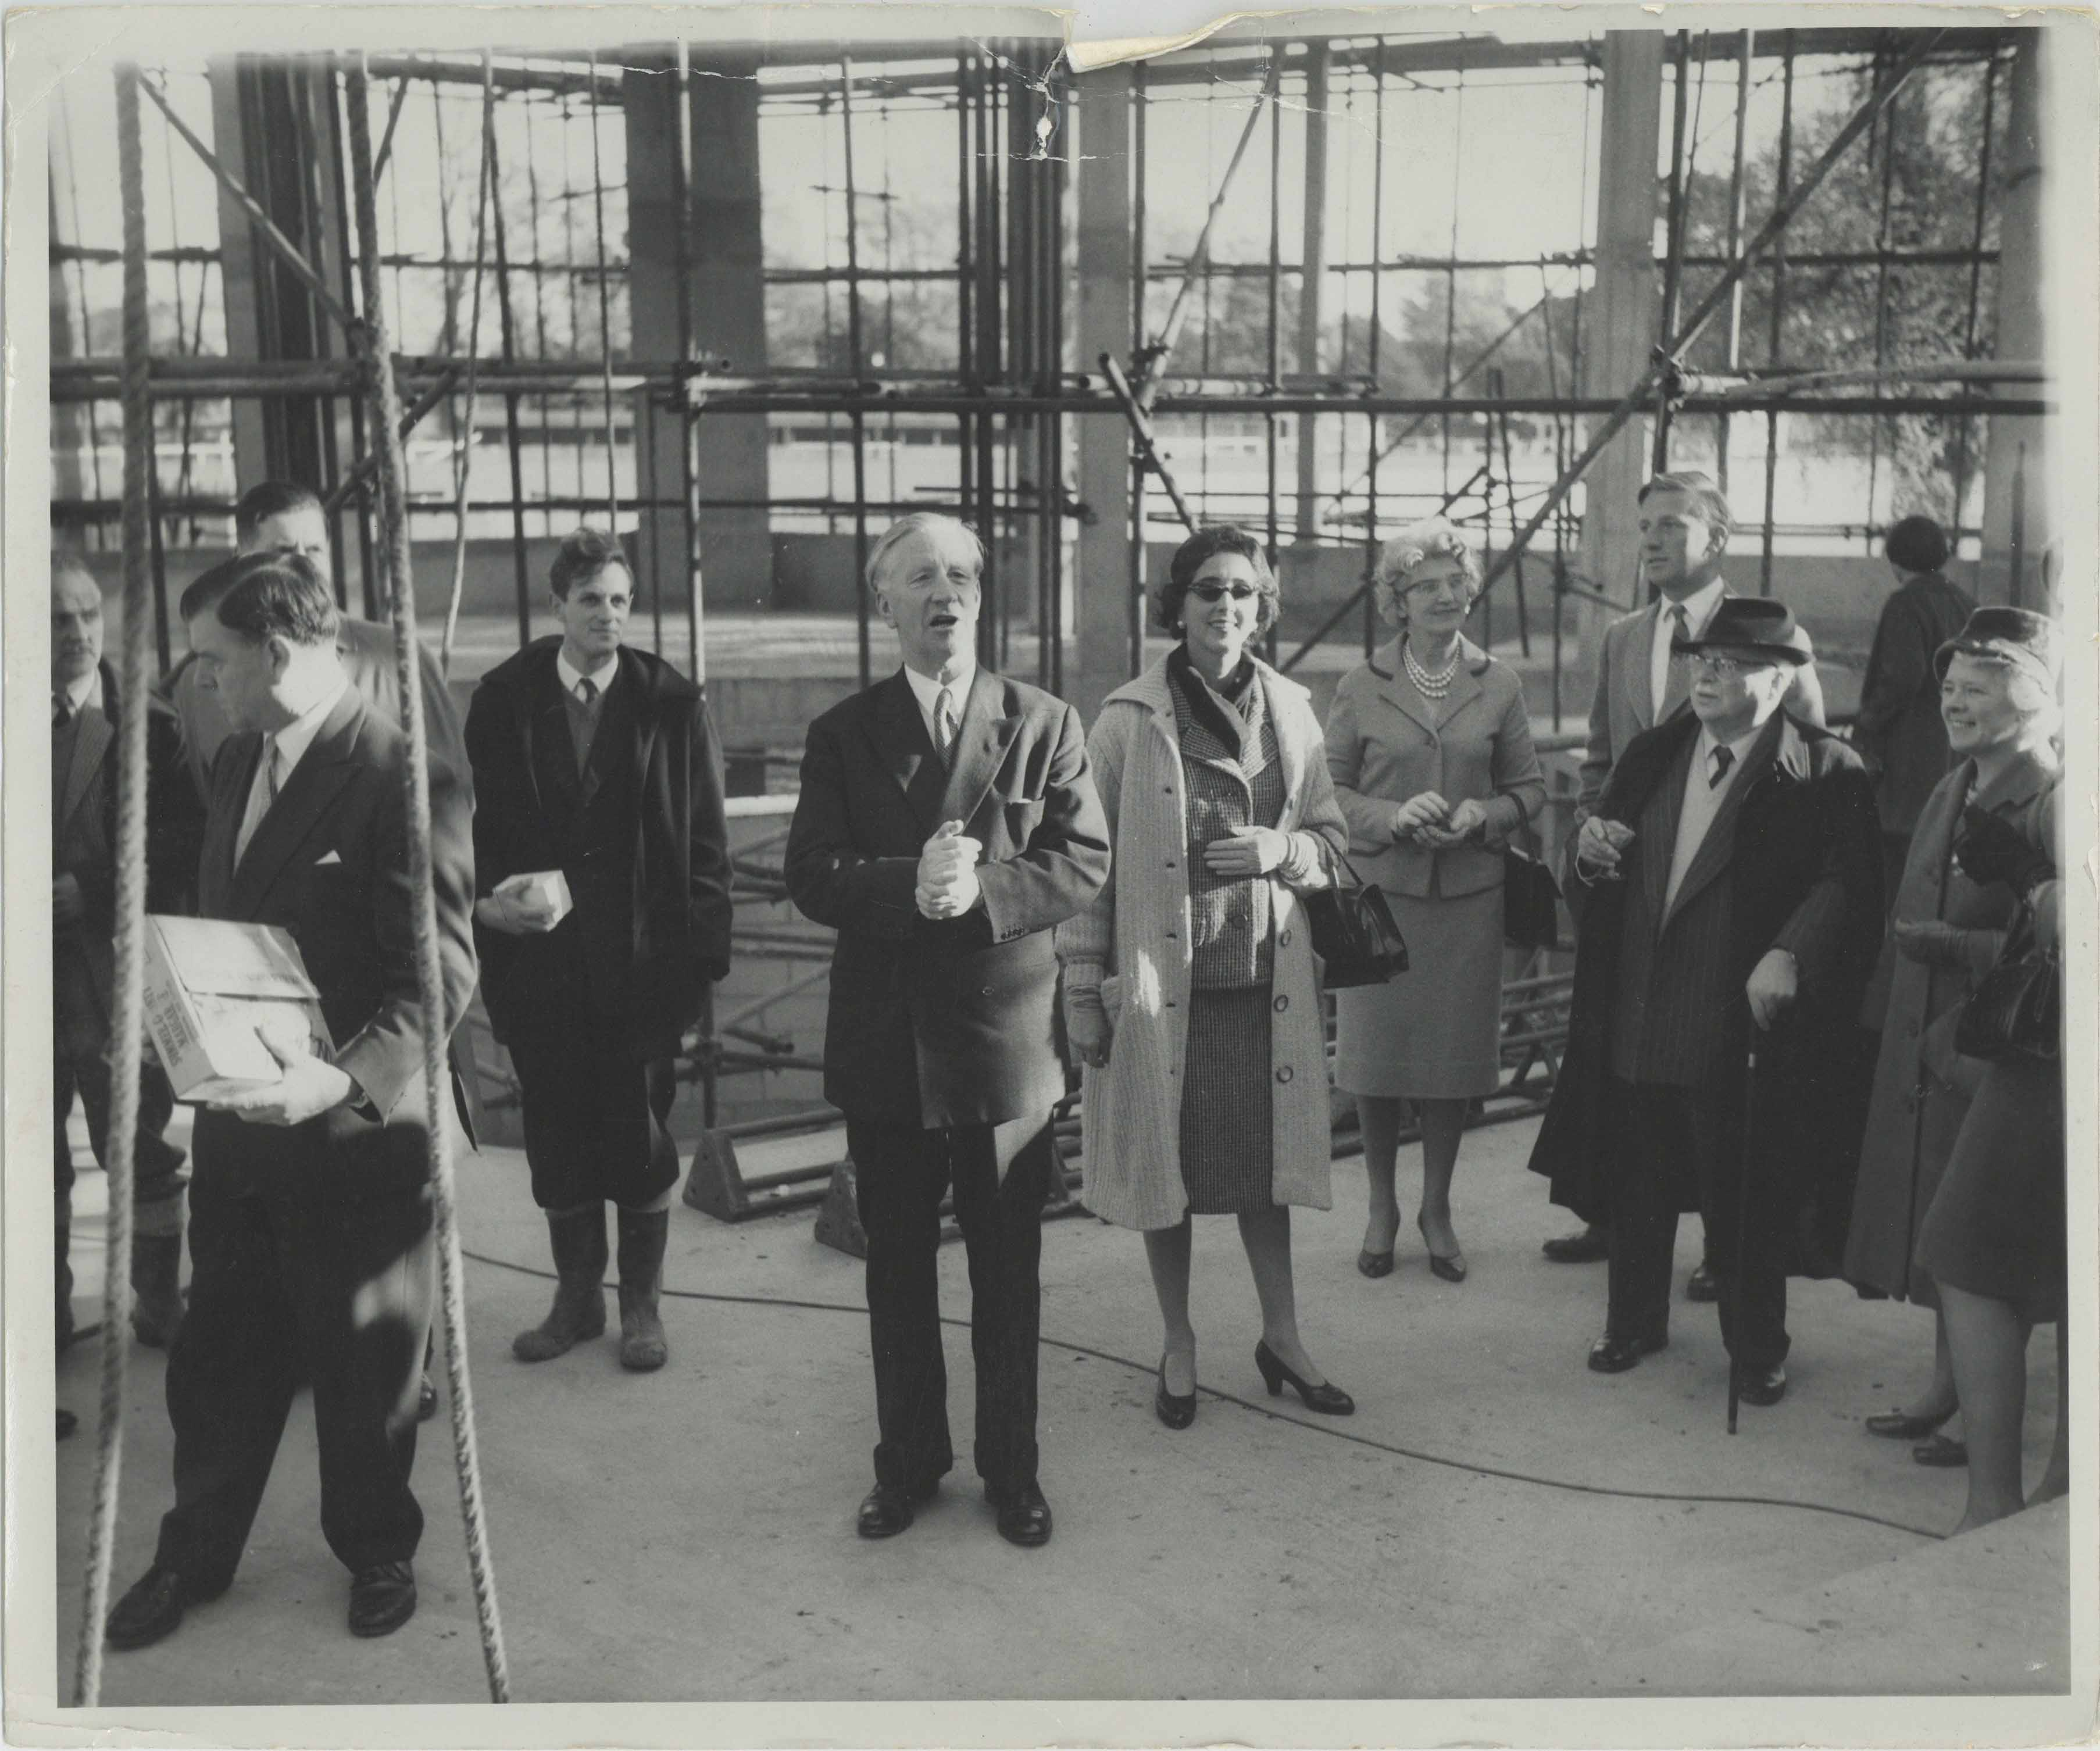 Photograph Topping Out Ceremony - Exterior Festival Theatre - Leslie Evershed-Martin, Mary Bessborough - Photographer unknown - 23 Nov 1961 - Box 71 CFT WSRO